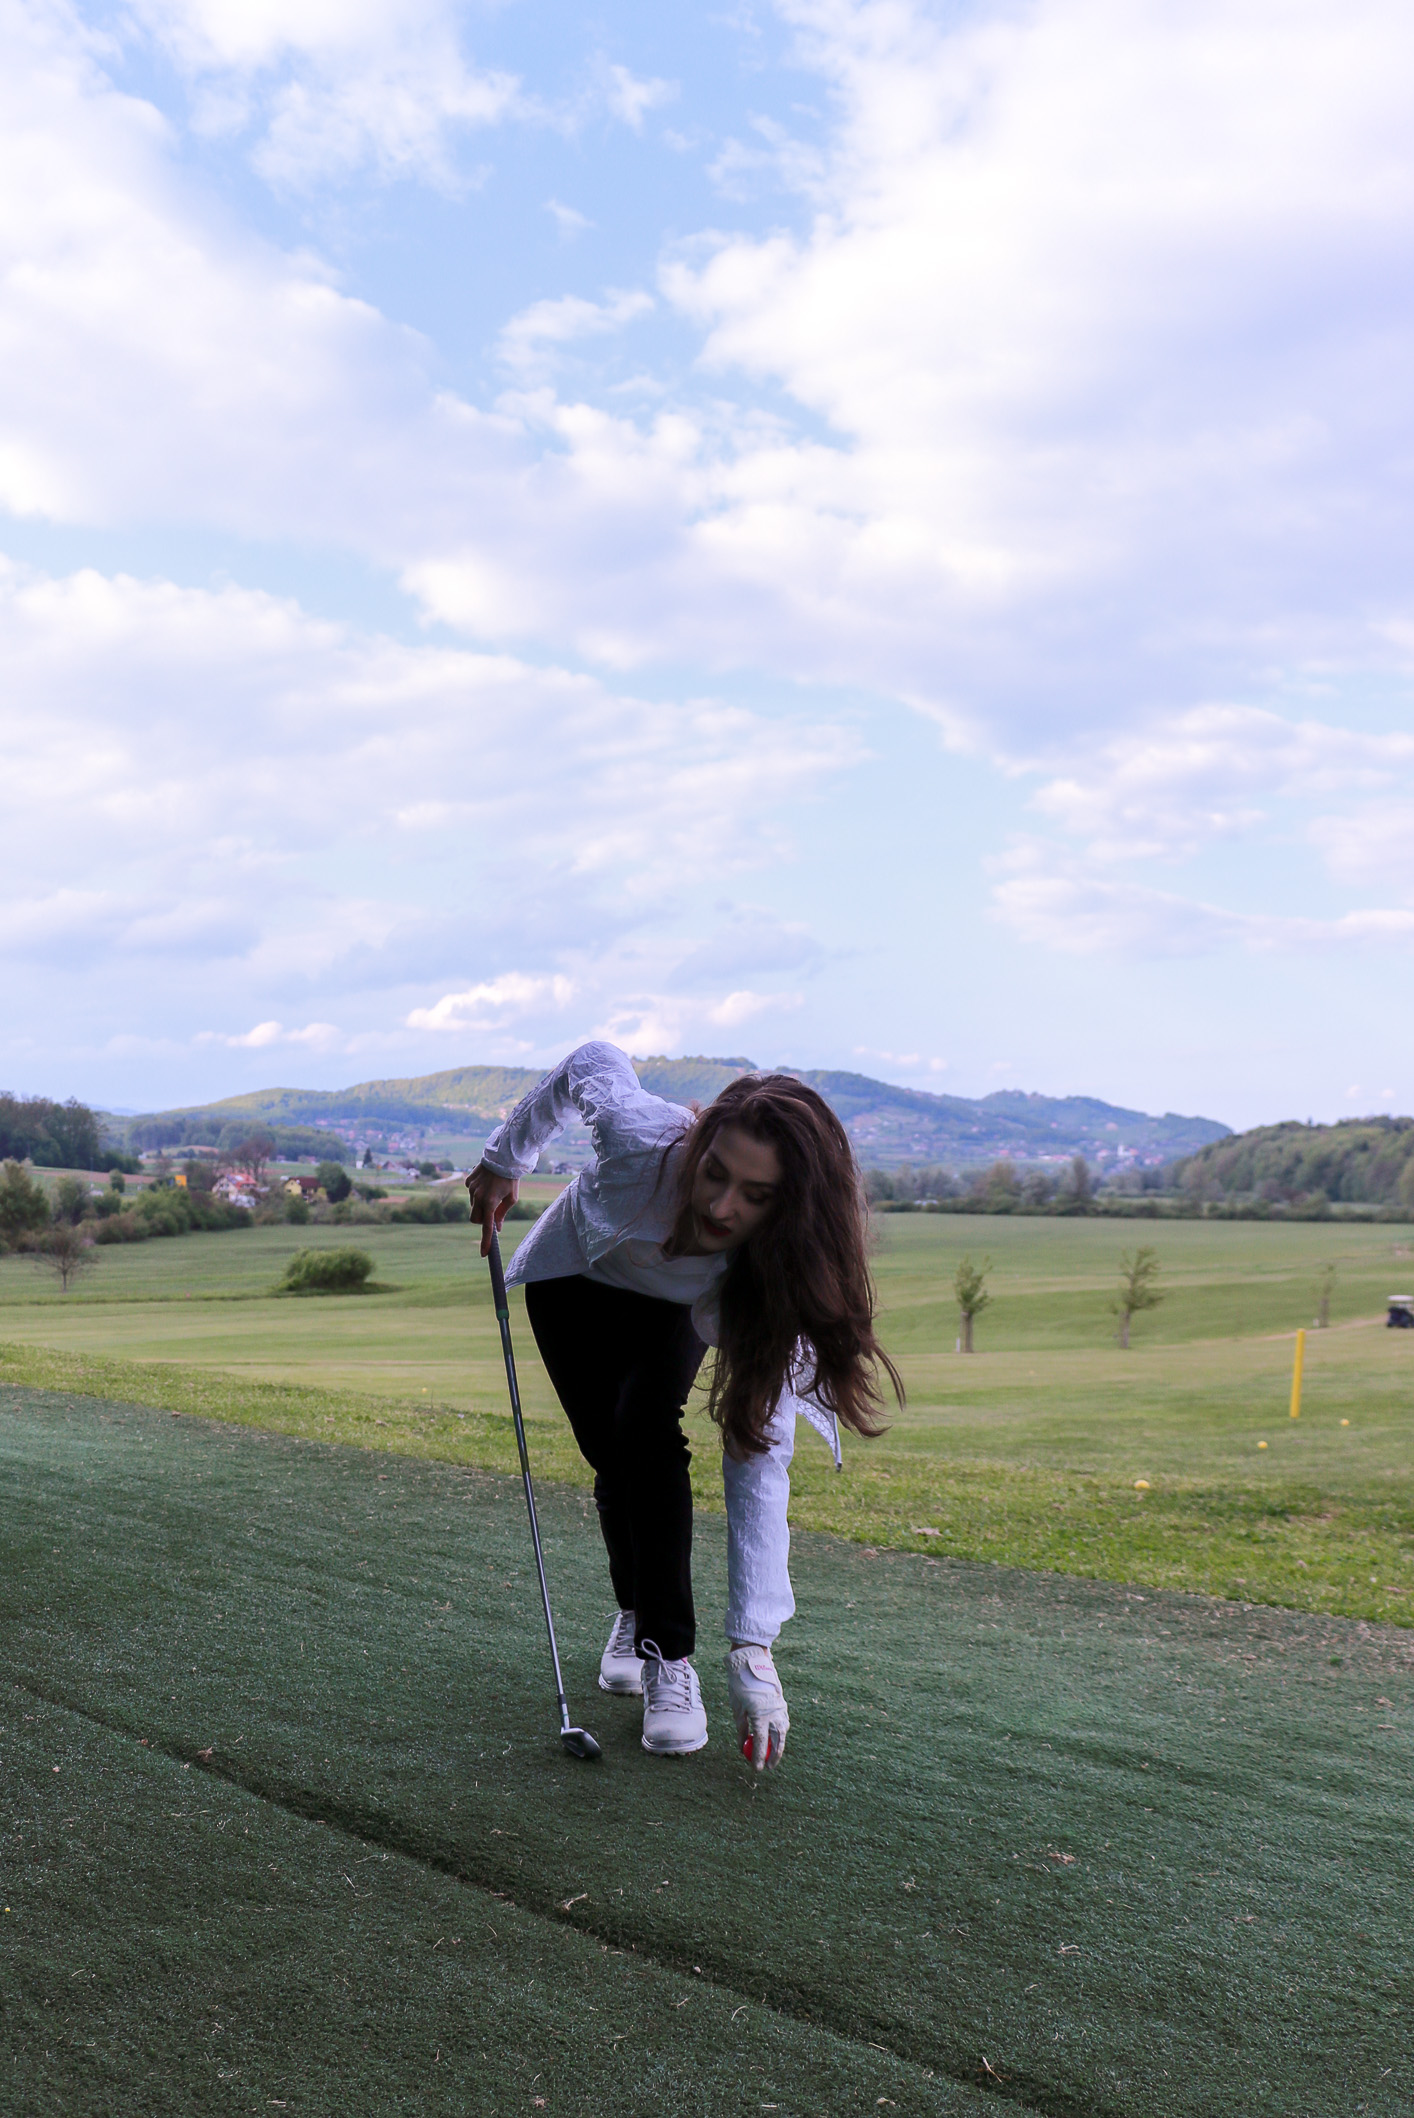 Fashion blogger Veronika Lipar of Brunette From Wall Street writing about ladies golf style